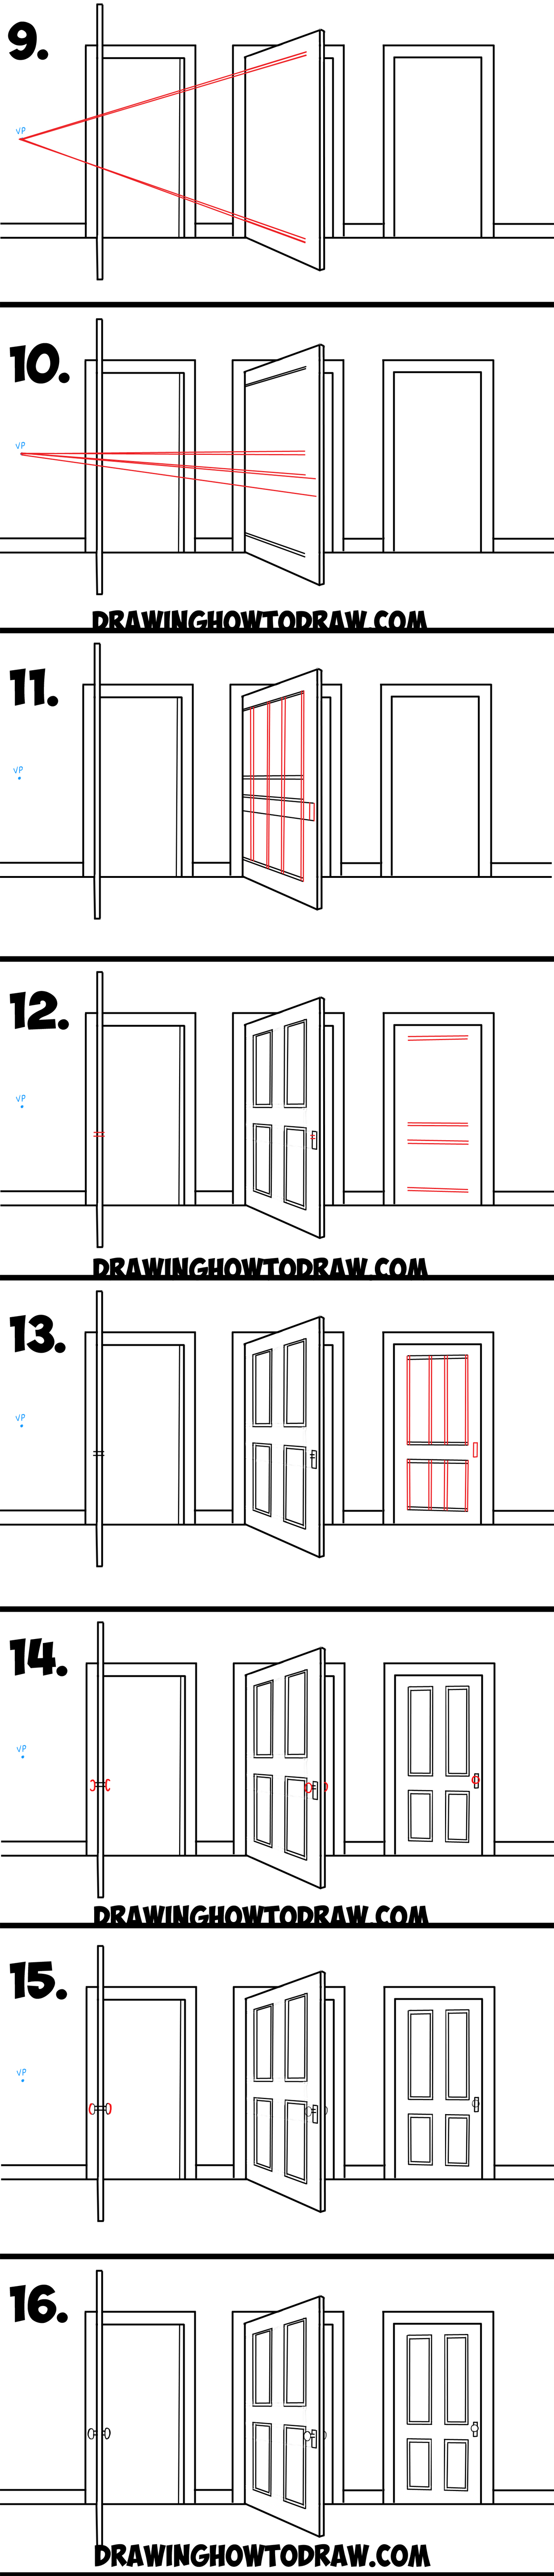 Open door closed door - Learn How To Draw Open Closed And Opening Doors In 2 Point Perspective Simple